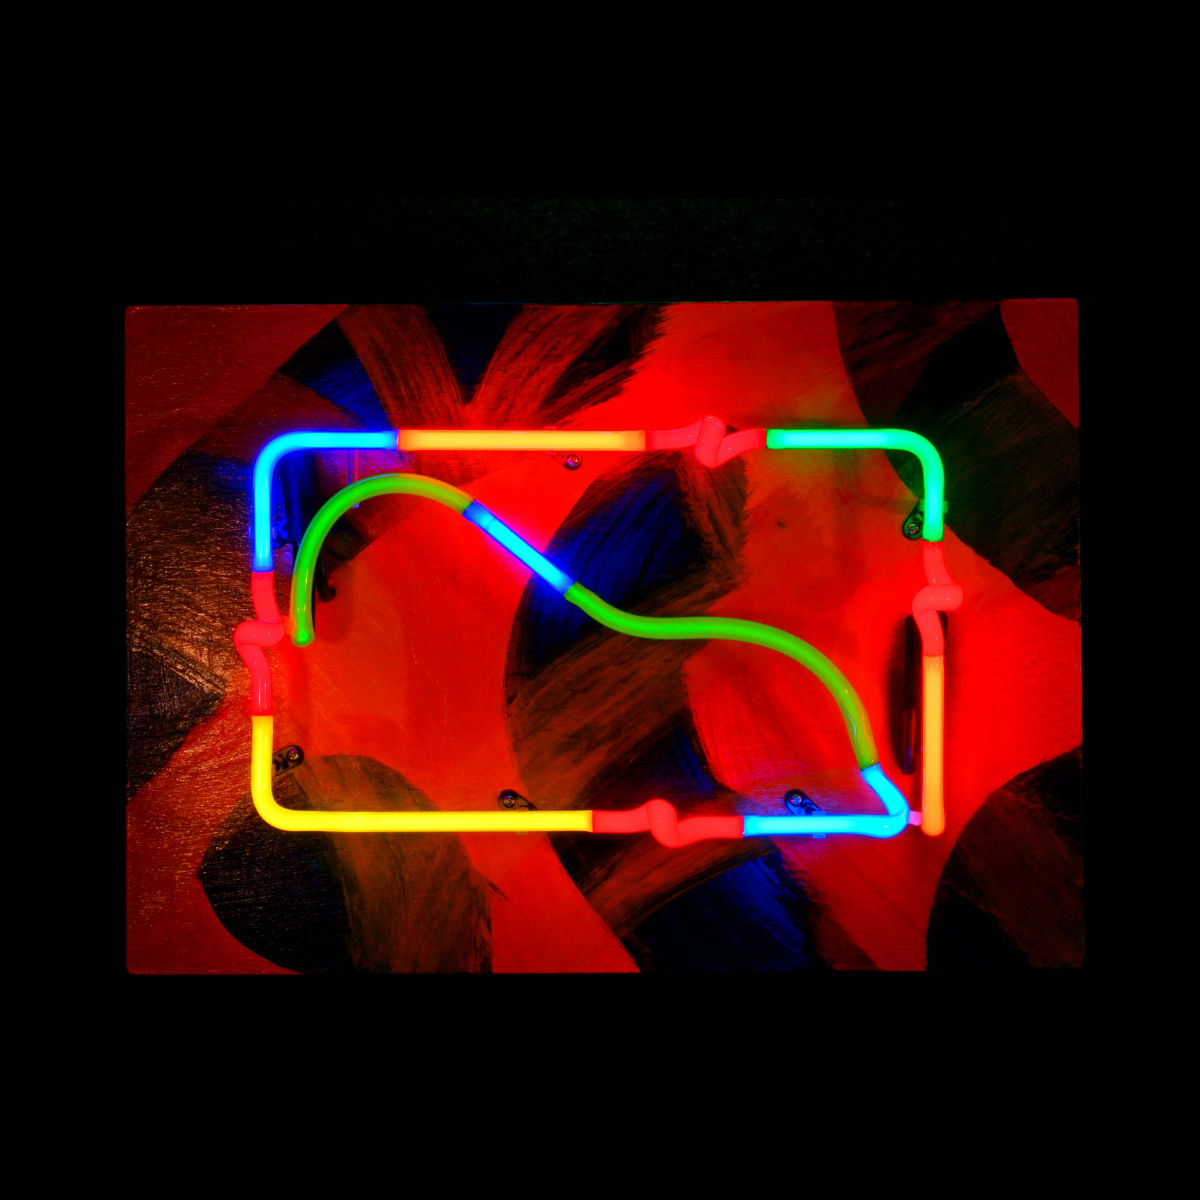 Rainforest With Red Frogs - Stained Italian Glass Neon Artwork